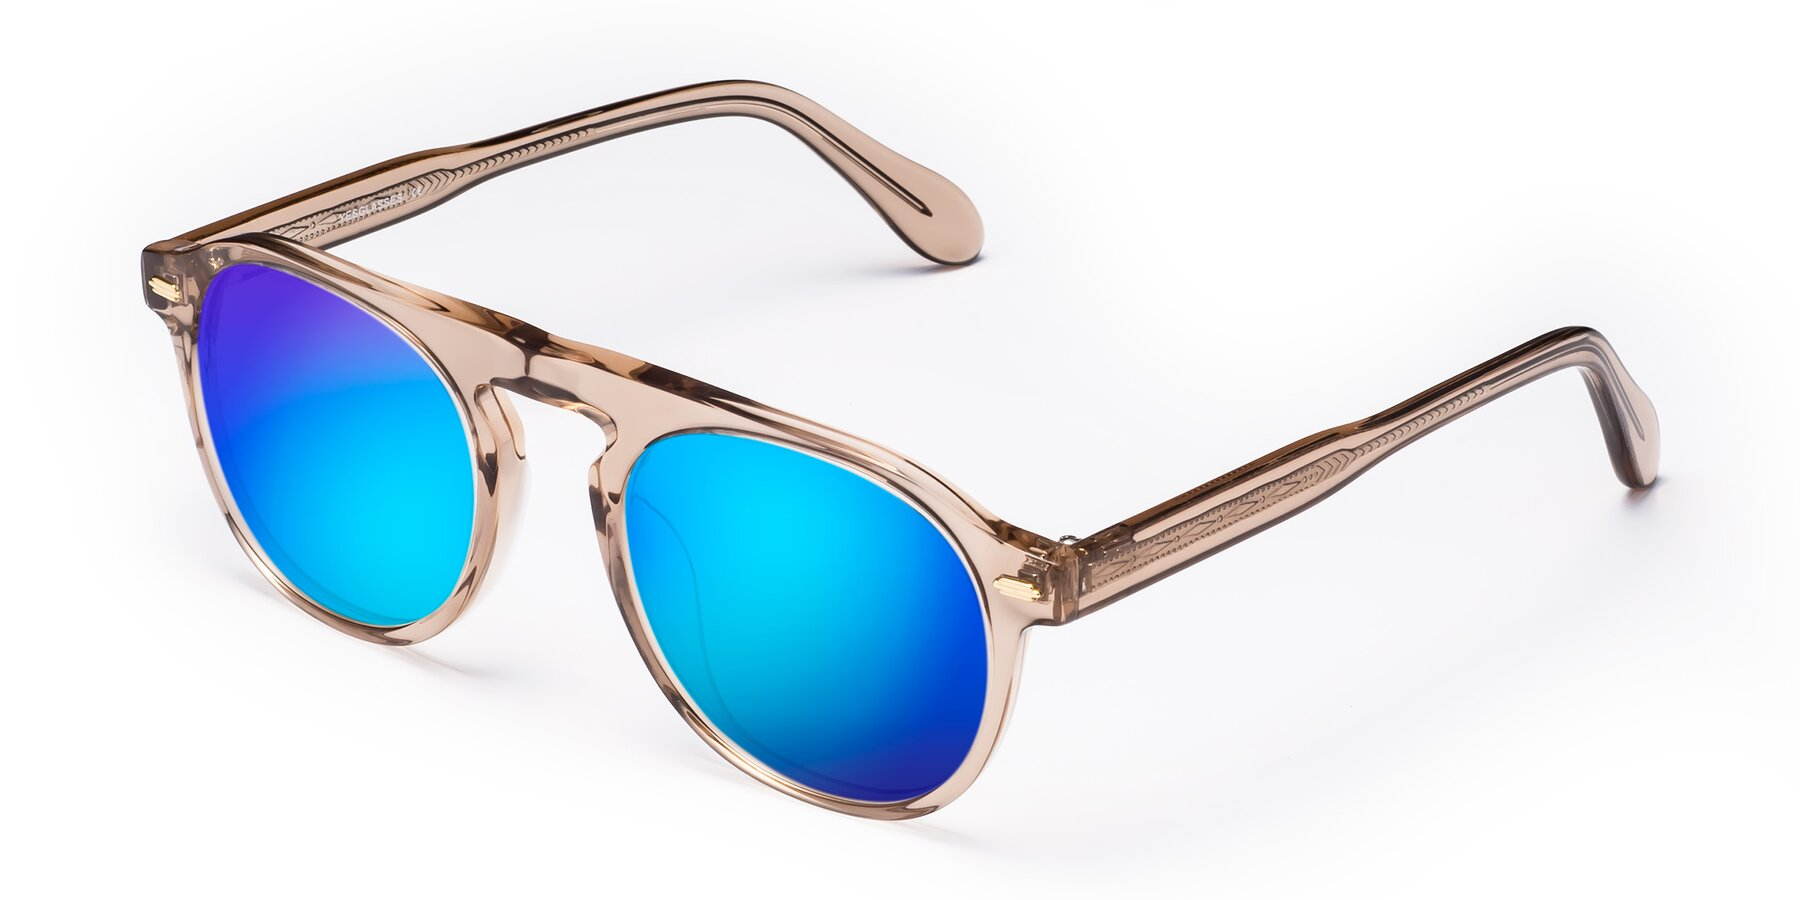 Angle of Mufasa in light Brown with Blue Mirrored Lenses